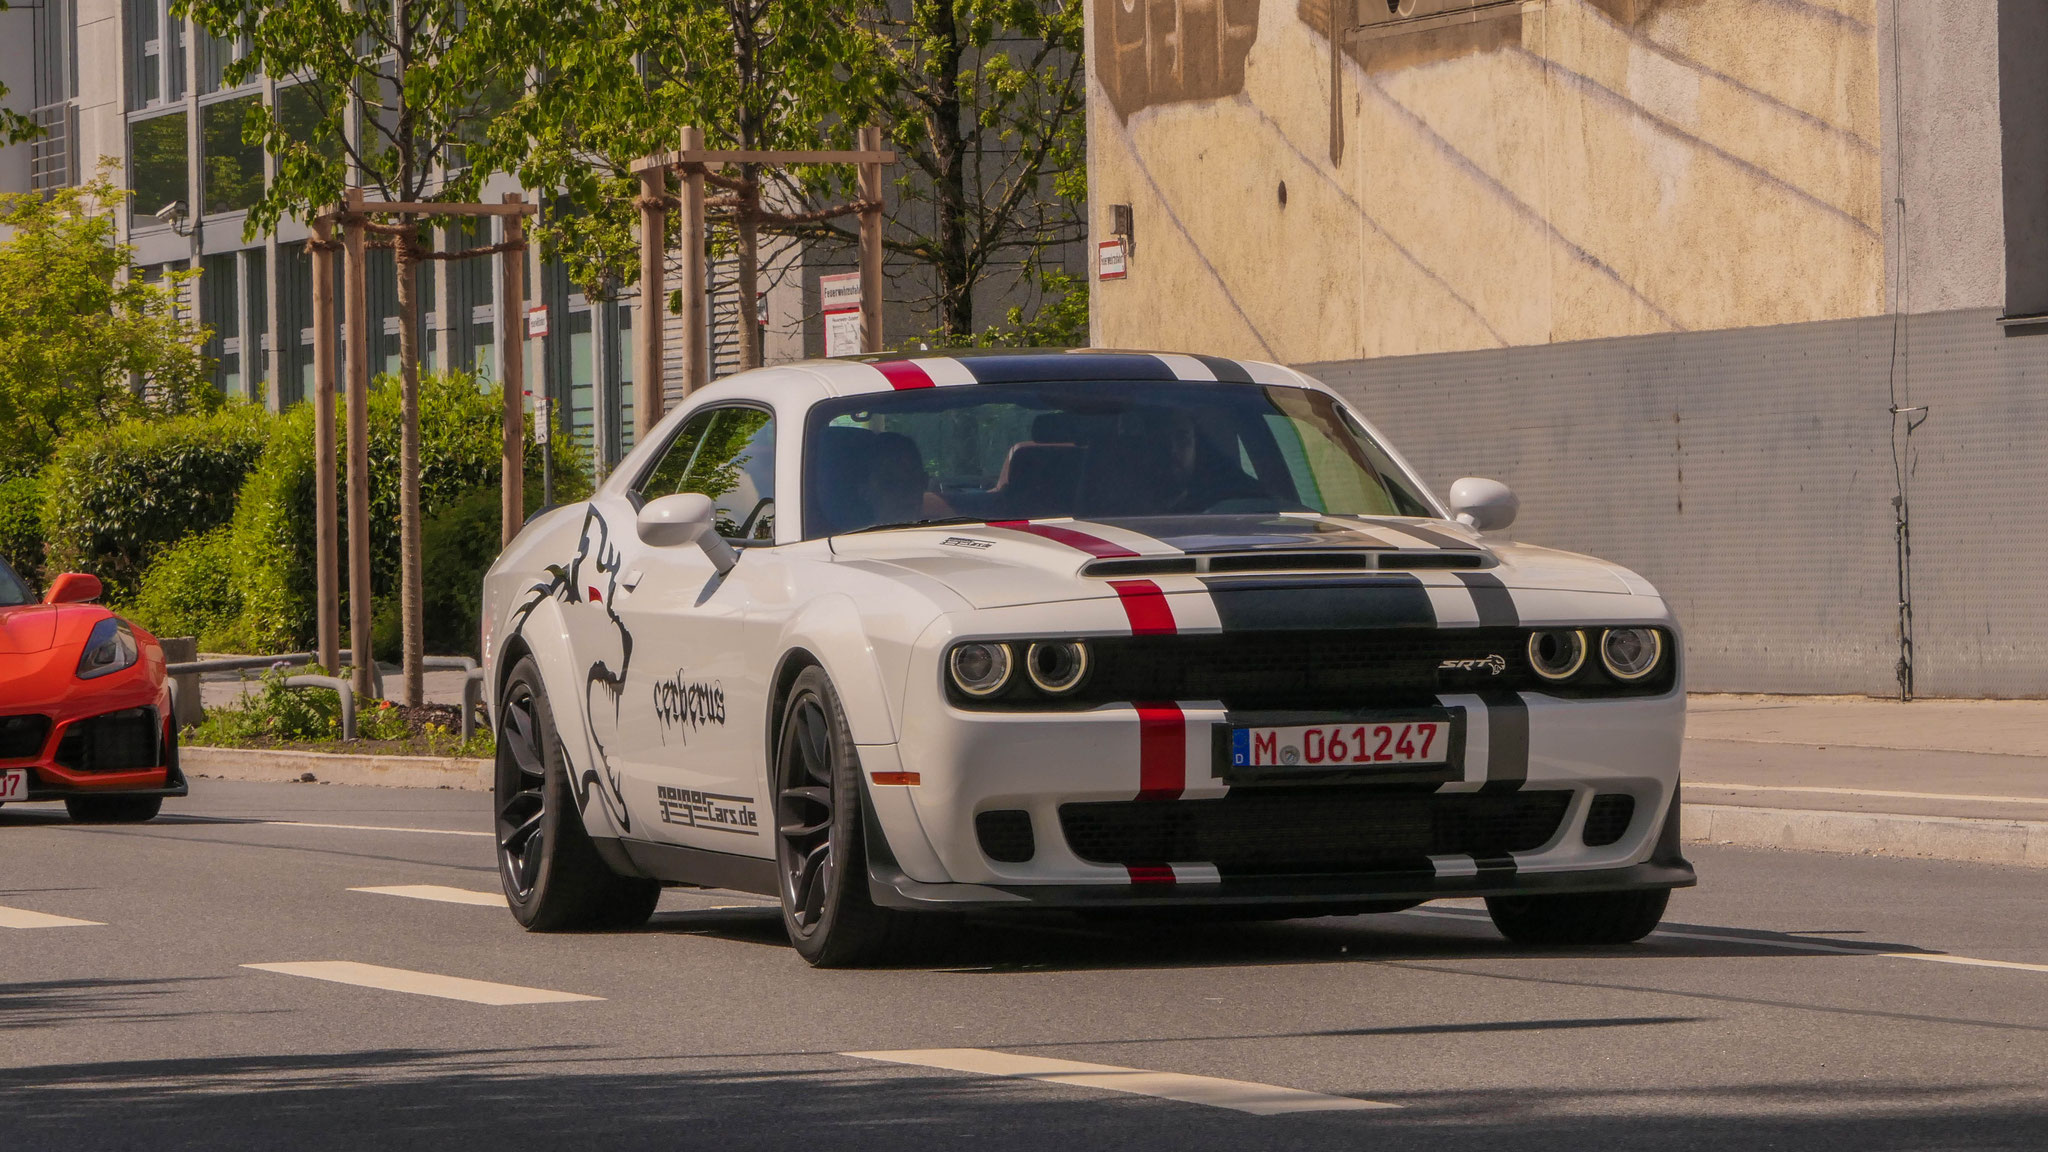 Dodge Challenger SRT - M-061247